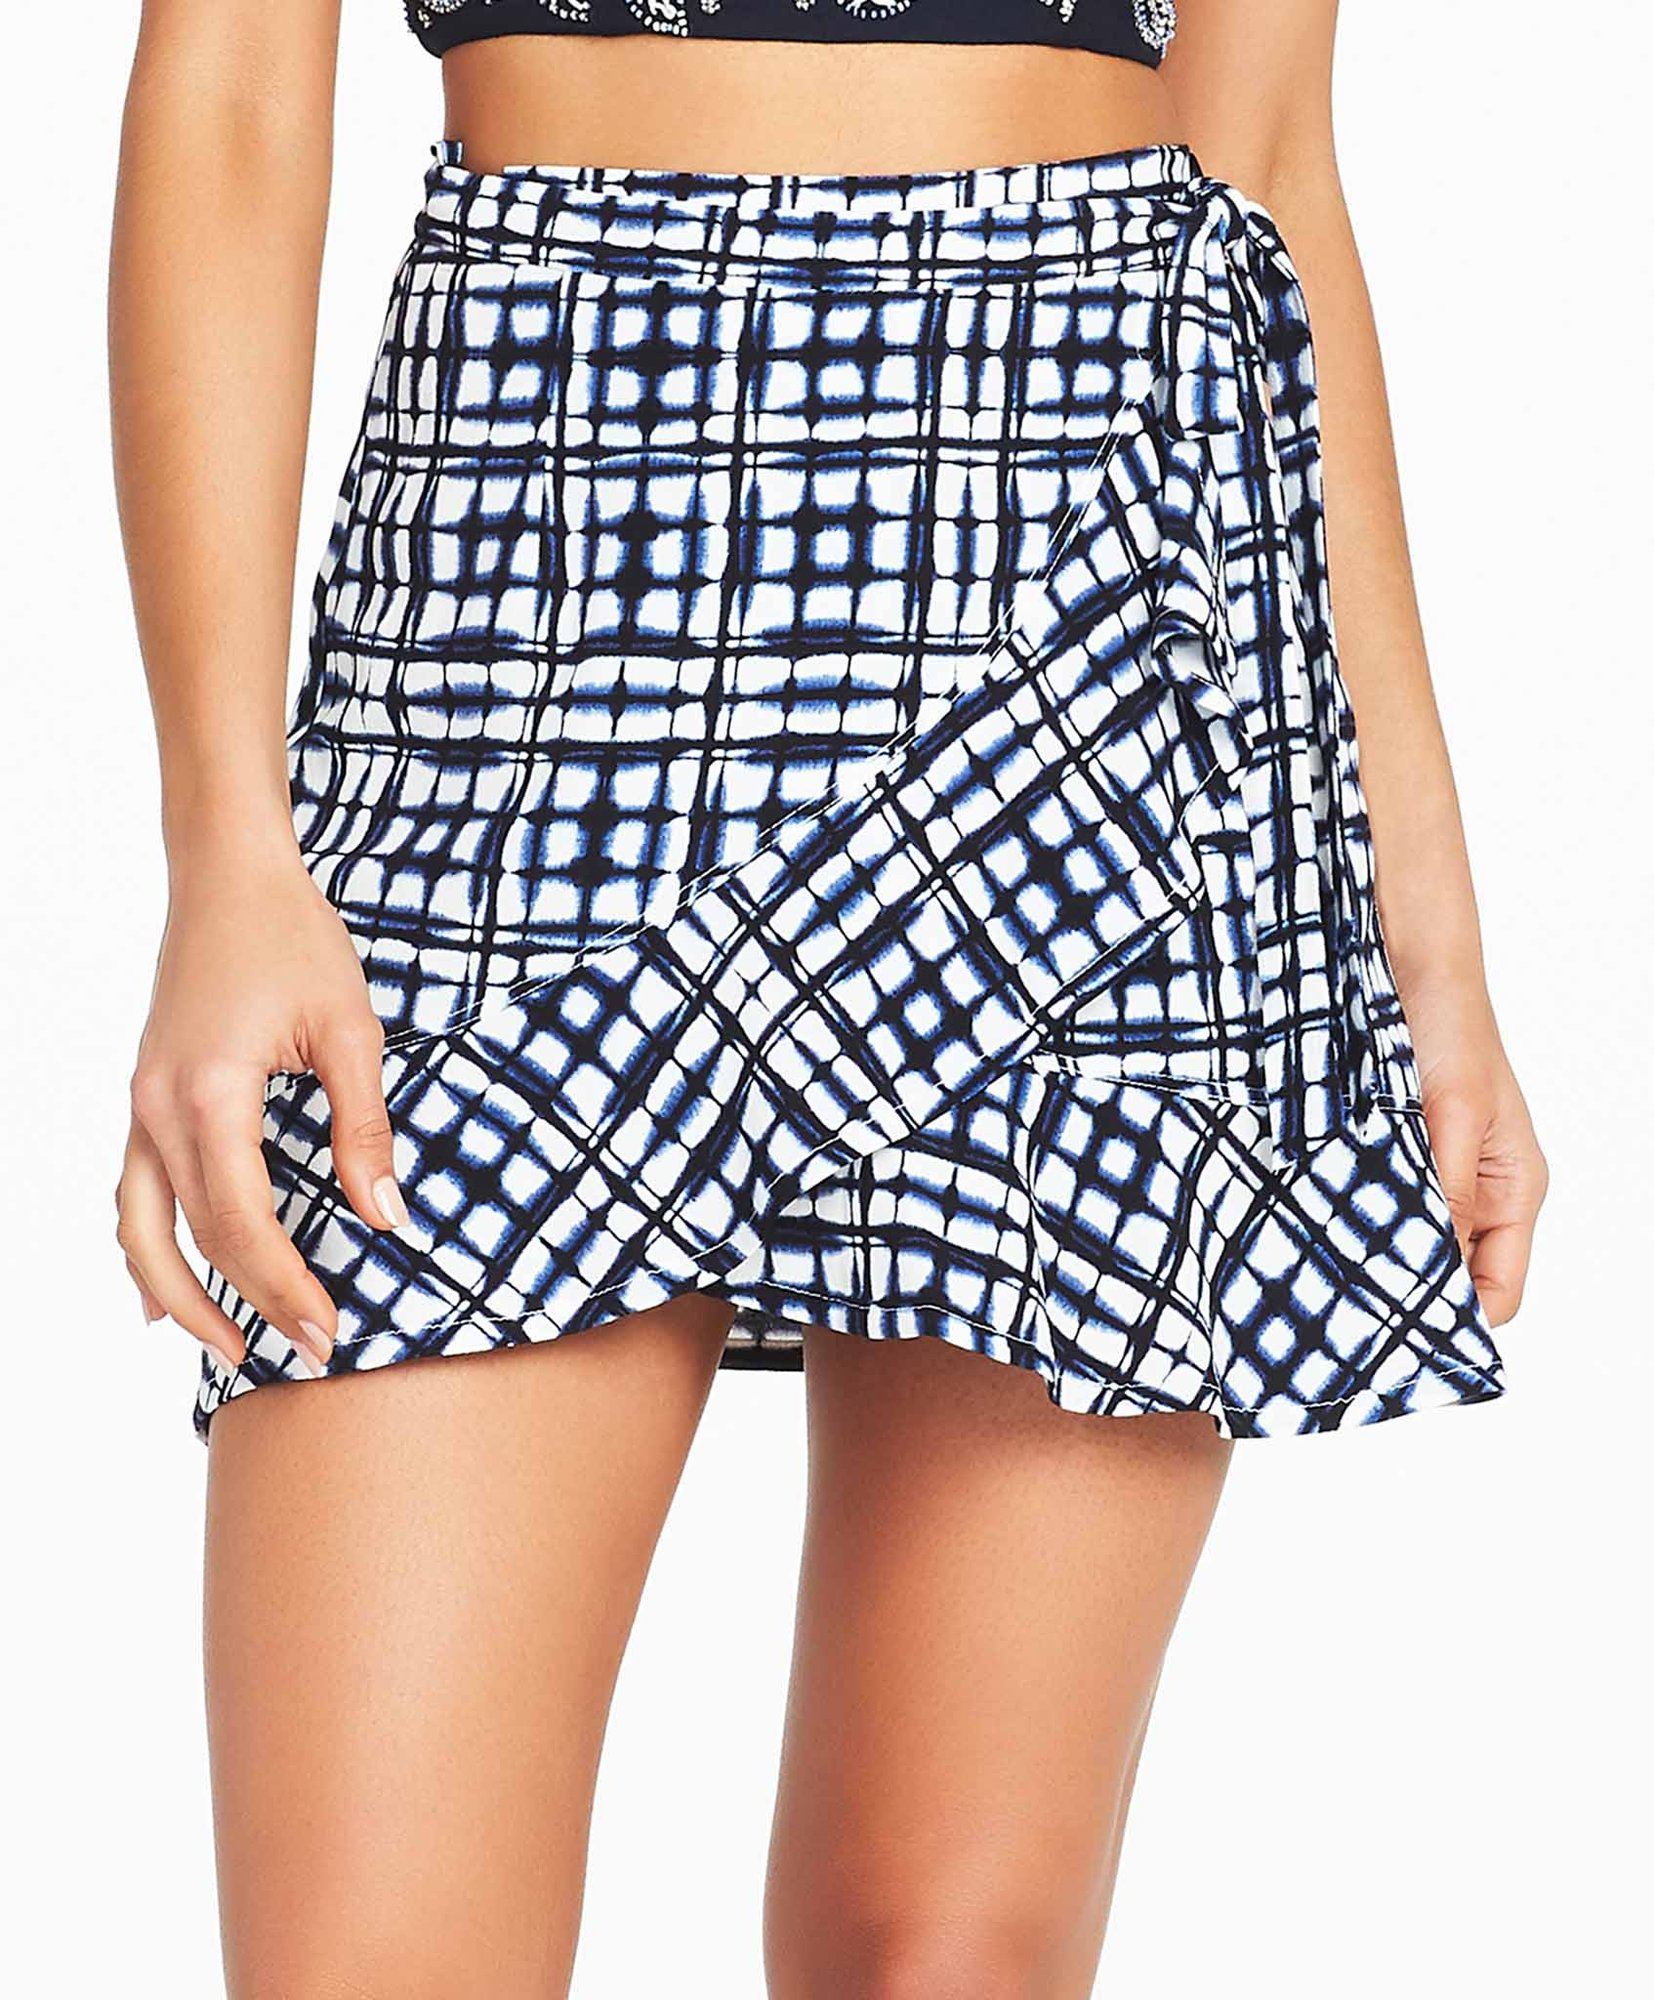 Tigerlily Ladies Size Small Skirt. Clothing, Shoes & Accessories Skirts